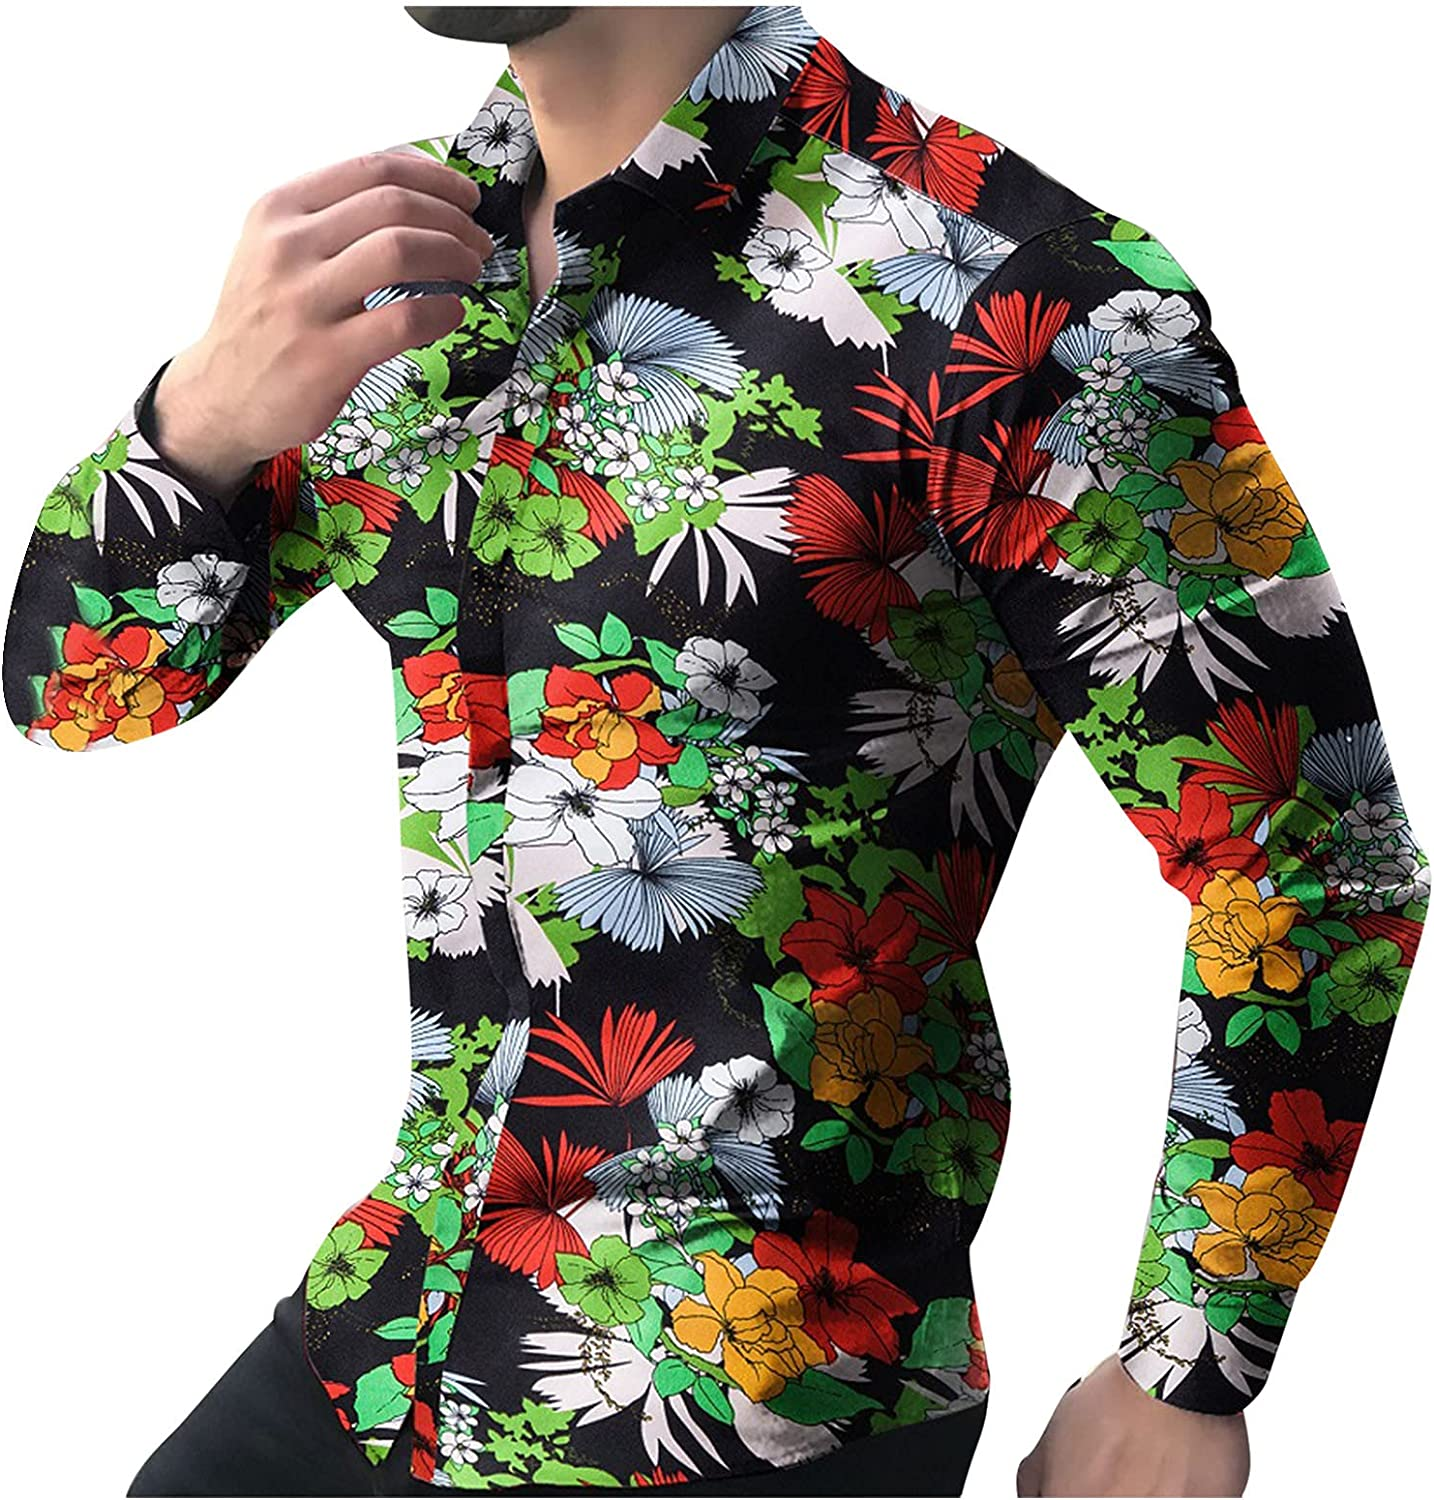 Long Sleeve Tee Shirts for Men Button up Slim Fit Dress Shirt Flower&Leaf Print Collar Tops Fashion Vacation Blouse